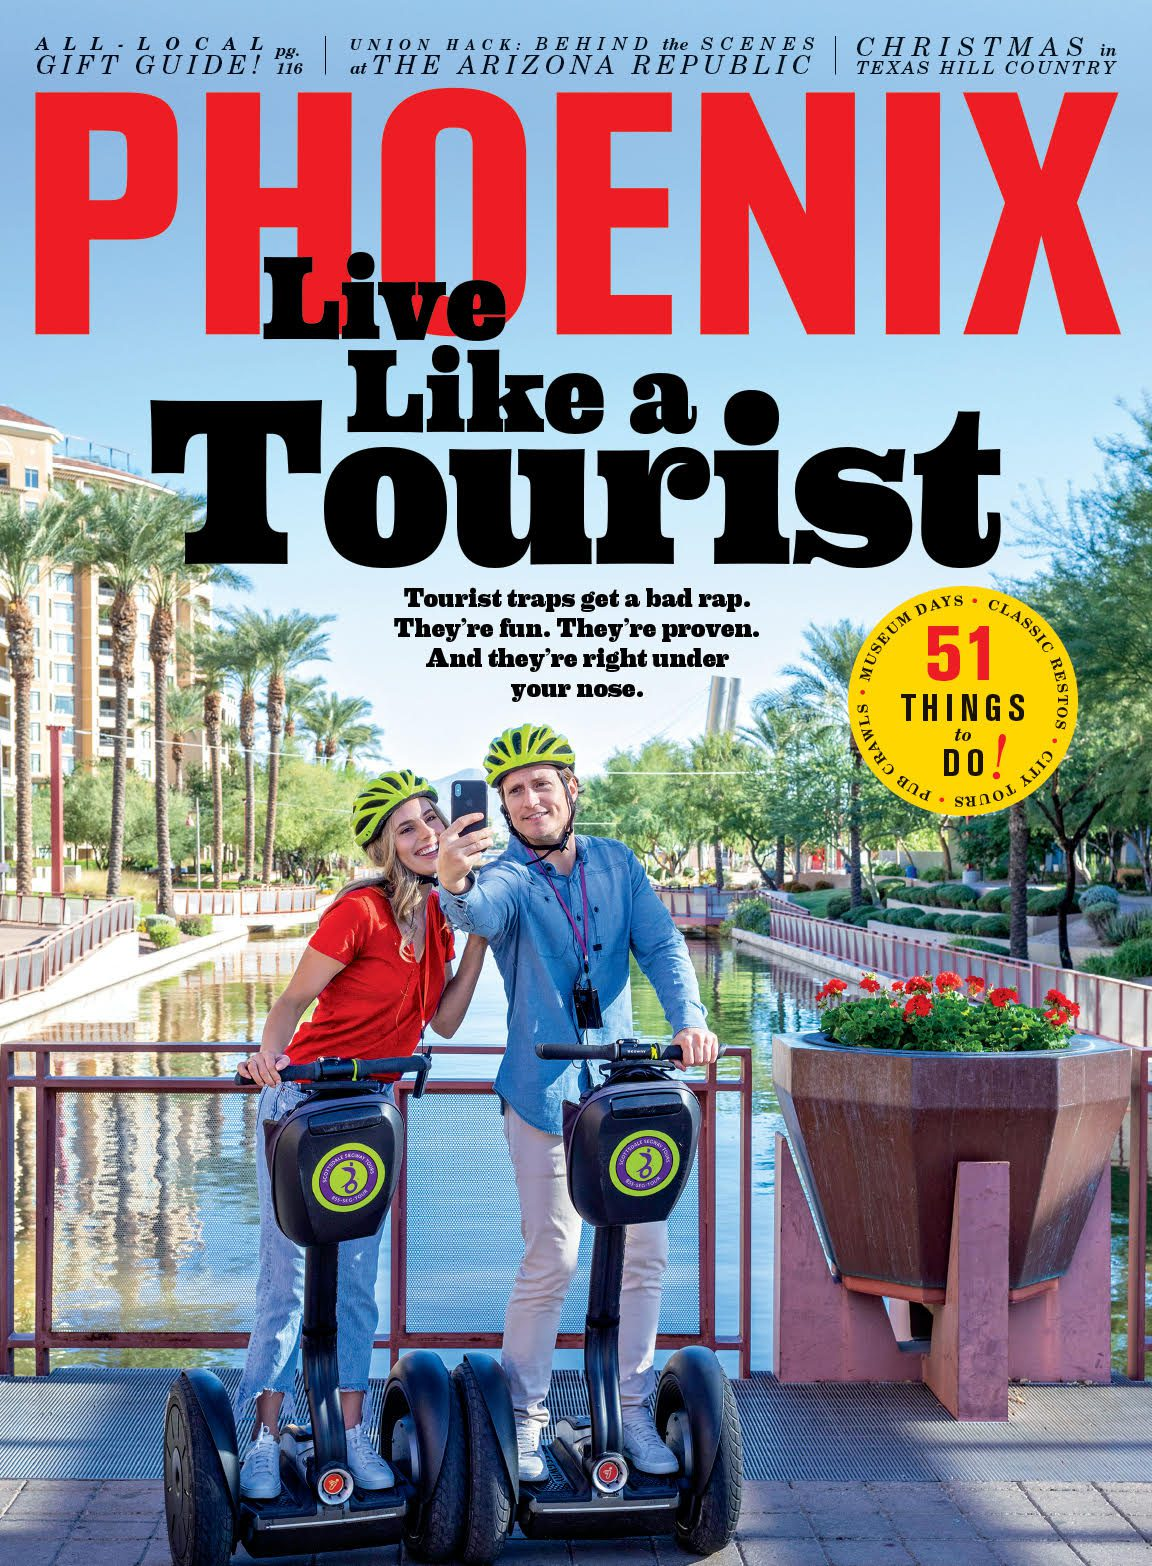 Scottsdale Segway Tours featured in Scottsdale Magazine and on the cover!